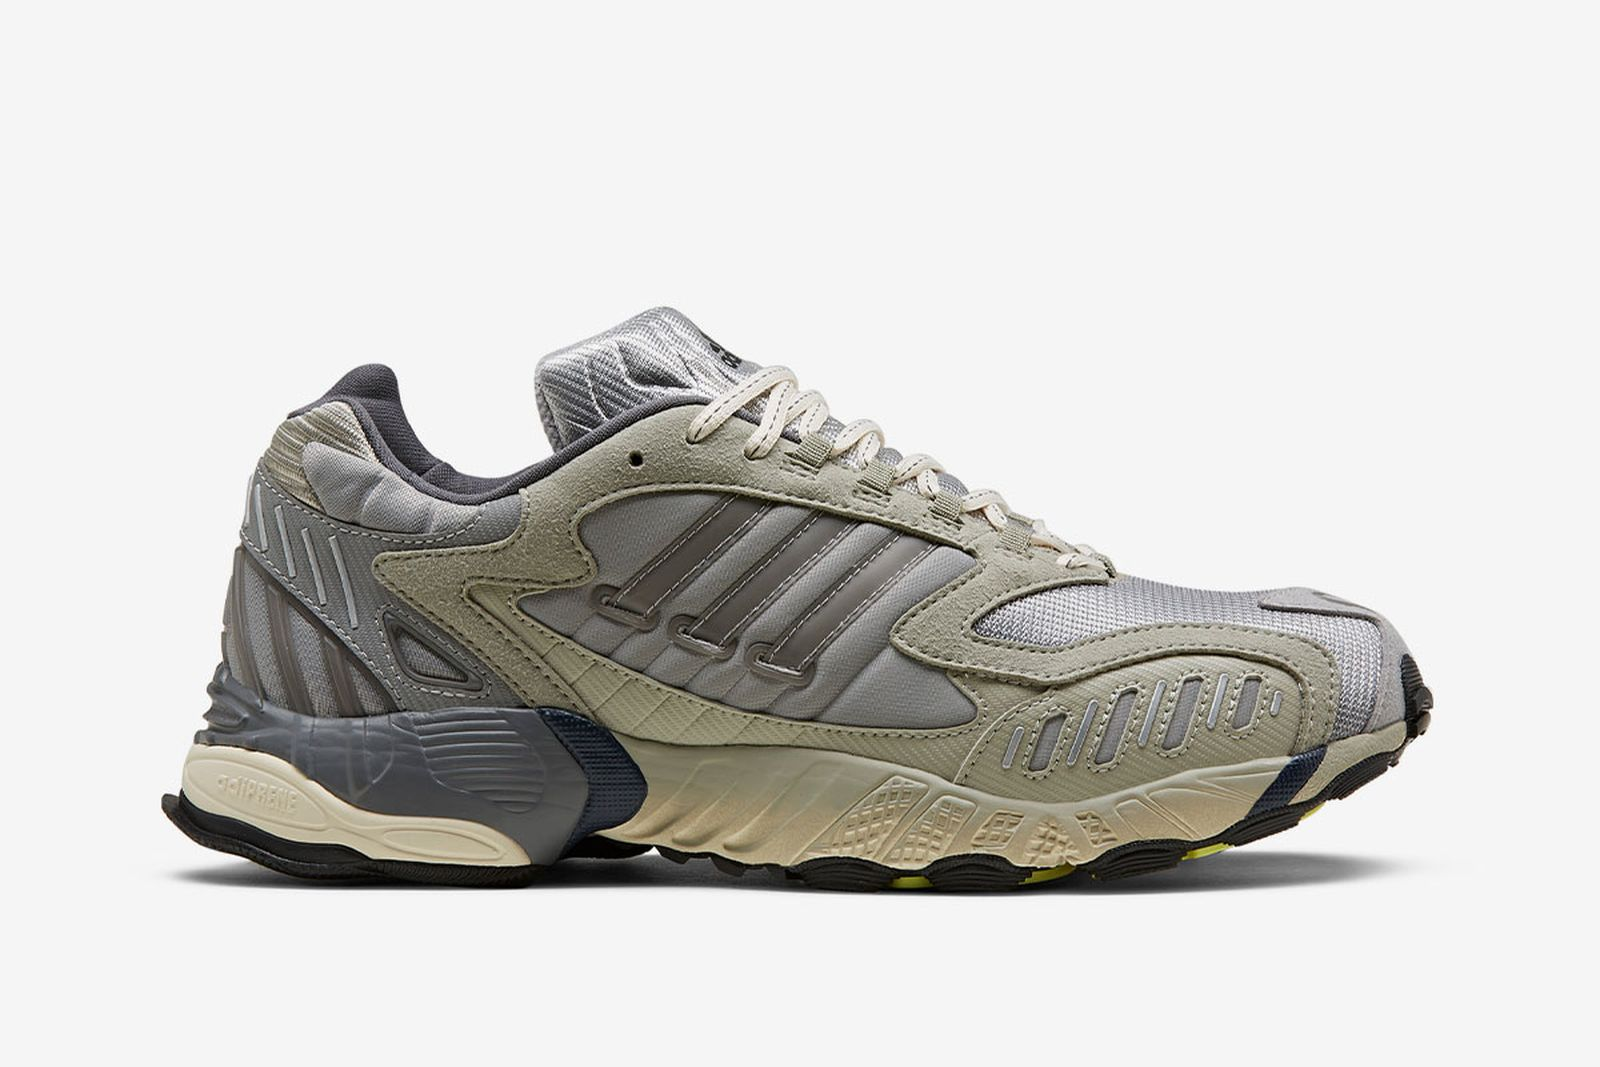 norse projects x adidas Torsion TRDC grey